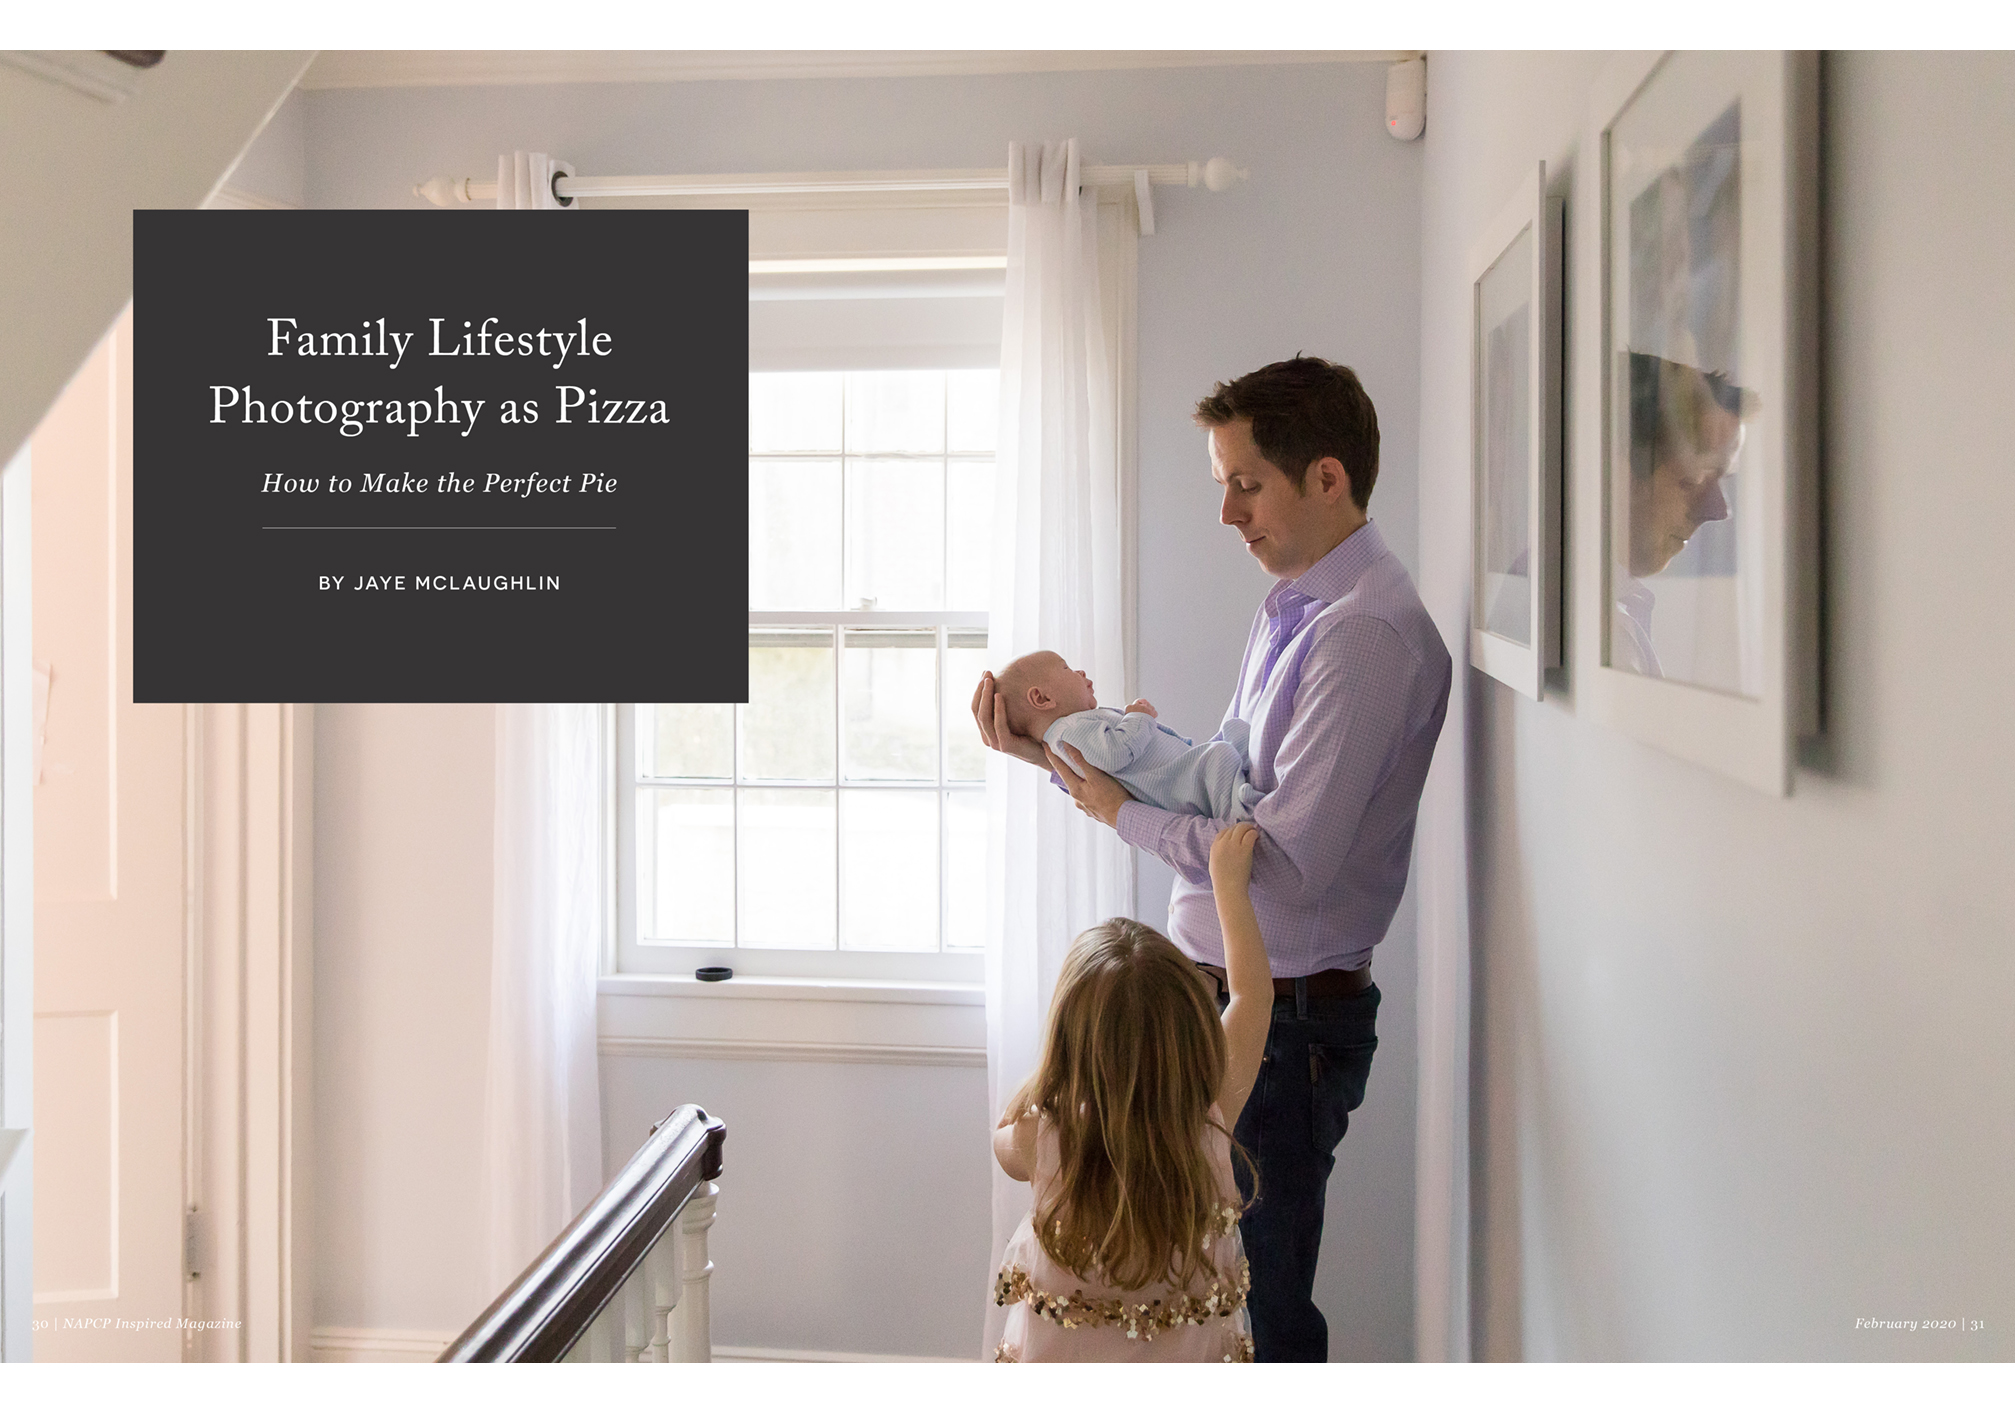 Family Lifestyle Photography as Pizza, How to Make the Perfect Pie, Jaye McLaughlin, dad holding baby, little girl, hallway portrait